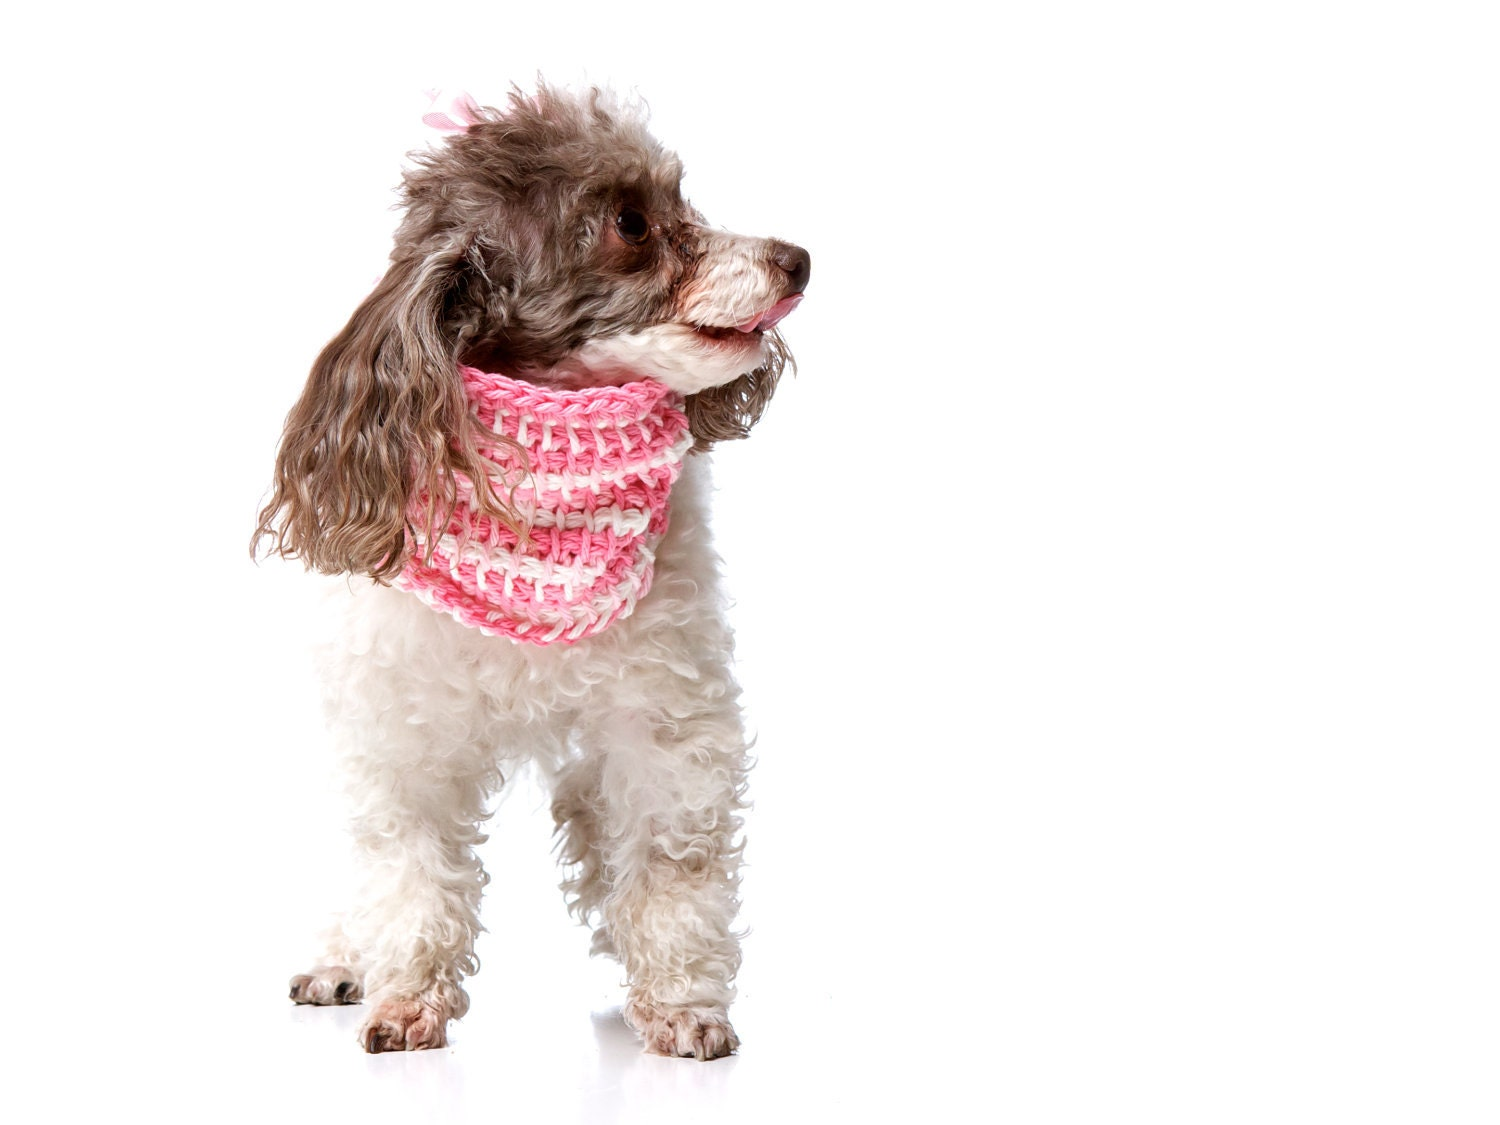 XS Pretty in Pink Spring Dog Sweater Cowl (neck warmer / scarf for dogs) Hot Pink and White 100% Cotton- Tunisian Crochet